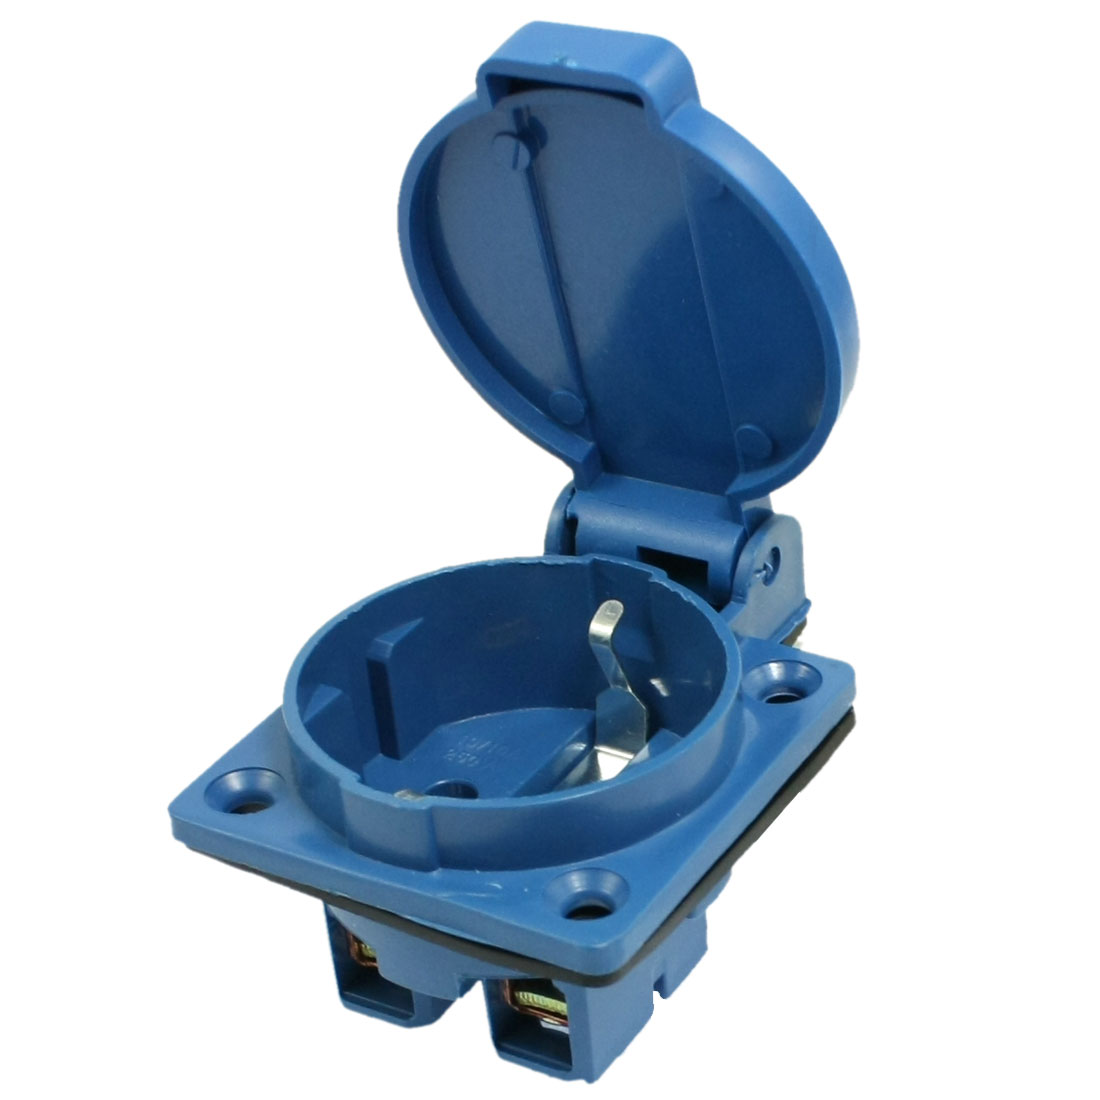 IP44 16A 2P XA-220S Industrial Panel Mount Socket Blue w Washer